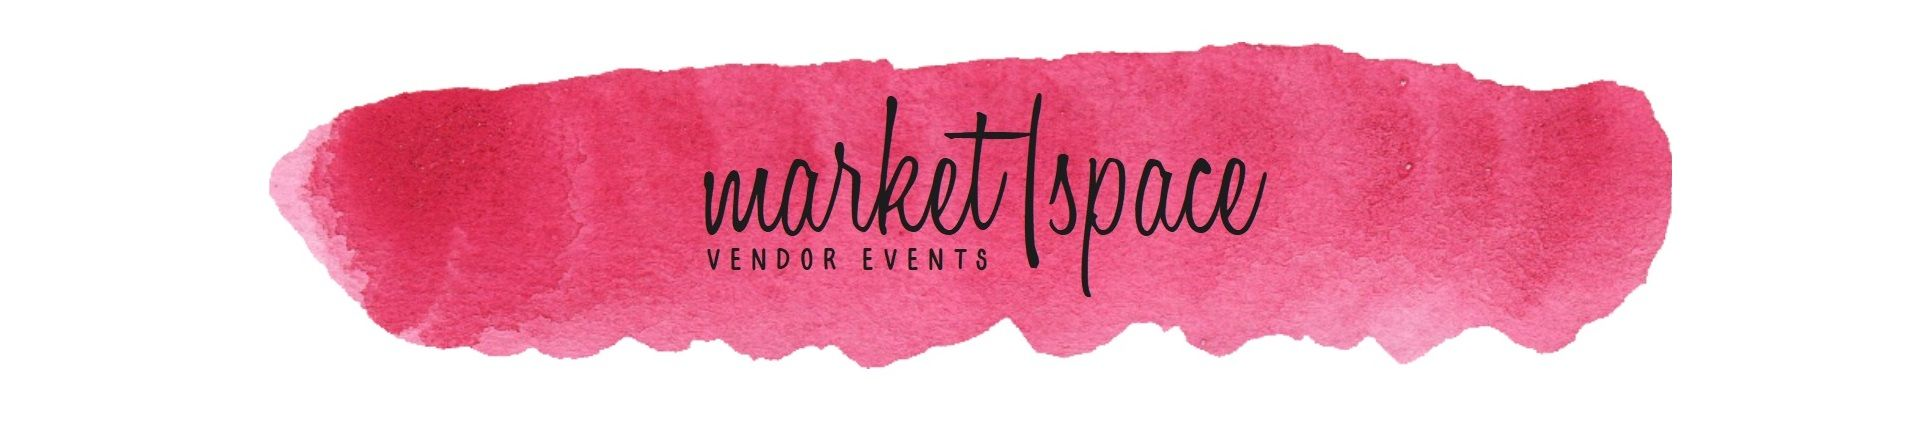 Marketspace Vendor Events Logo